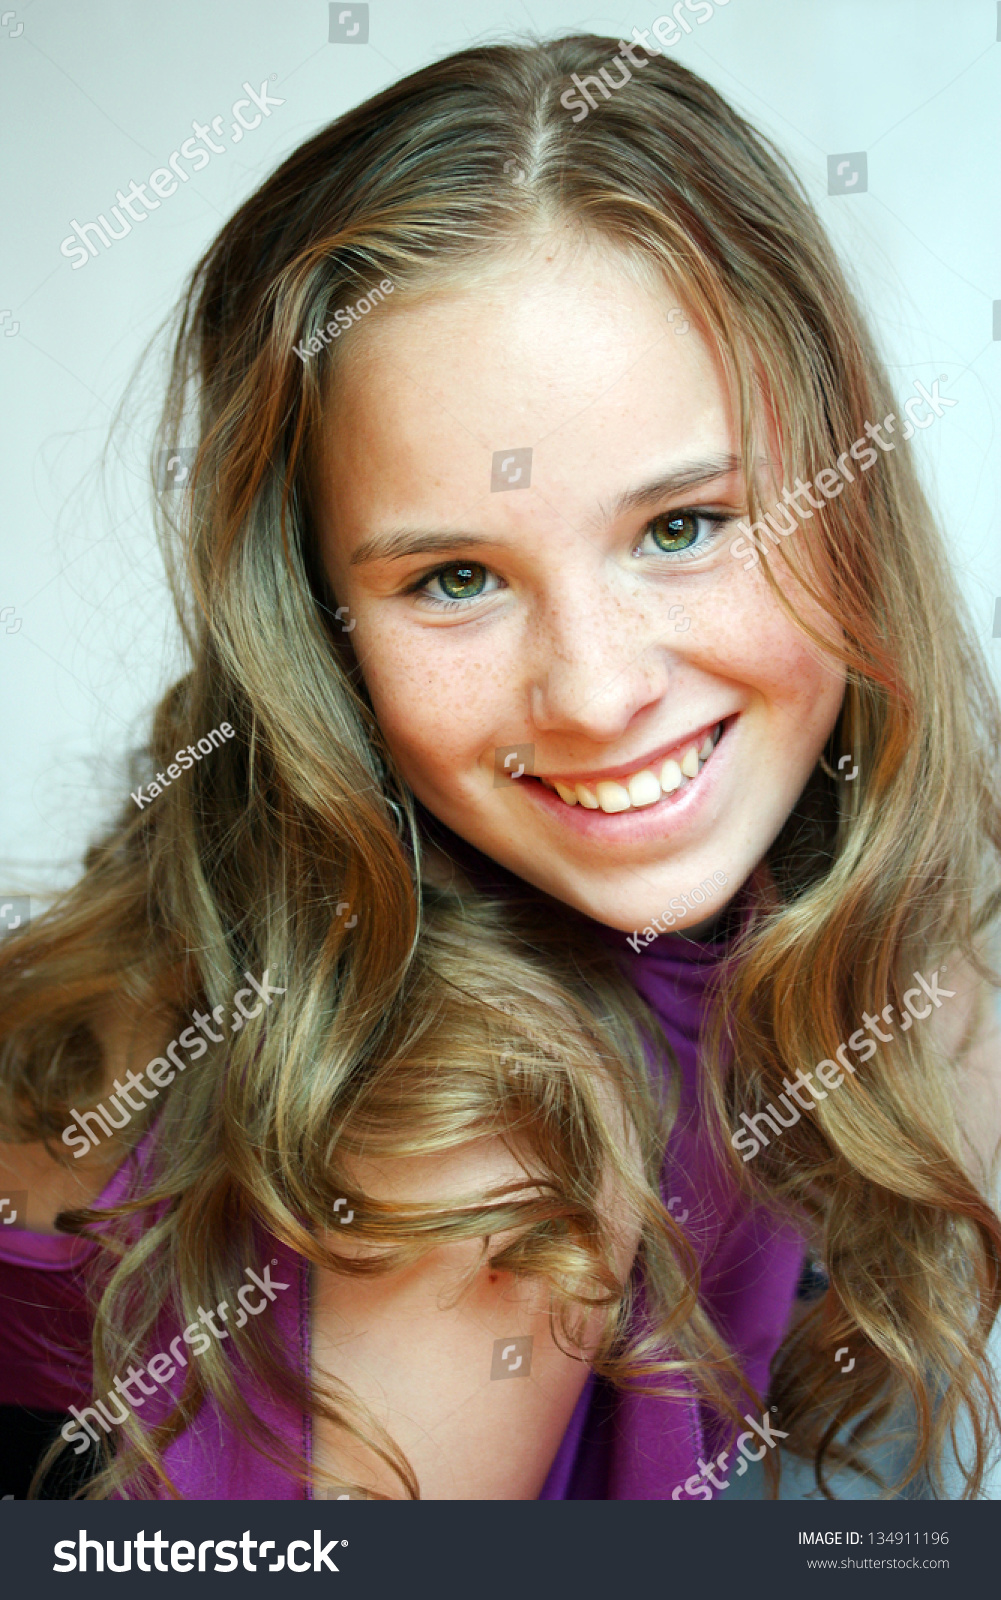 Beautiful Blondhaired 13Years Old Girl Portrait Stock Photo 134911196 -6989